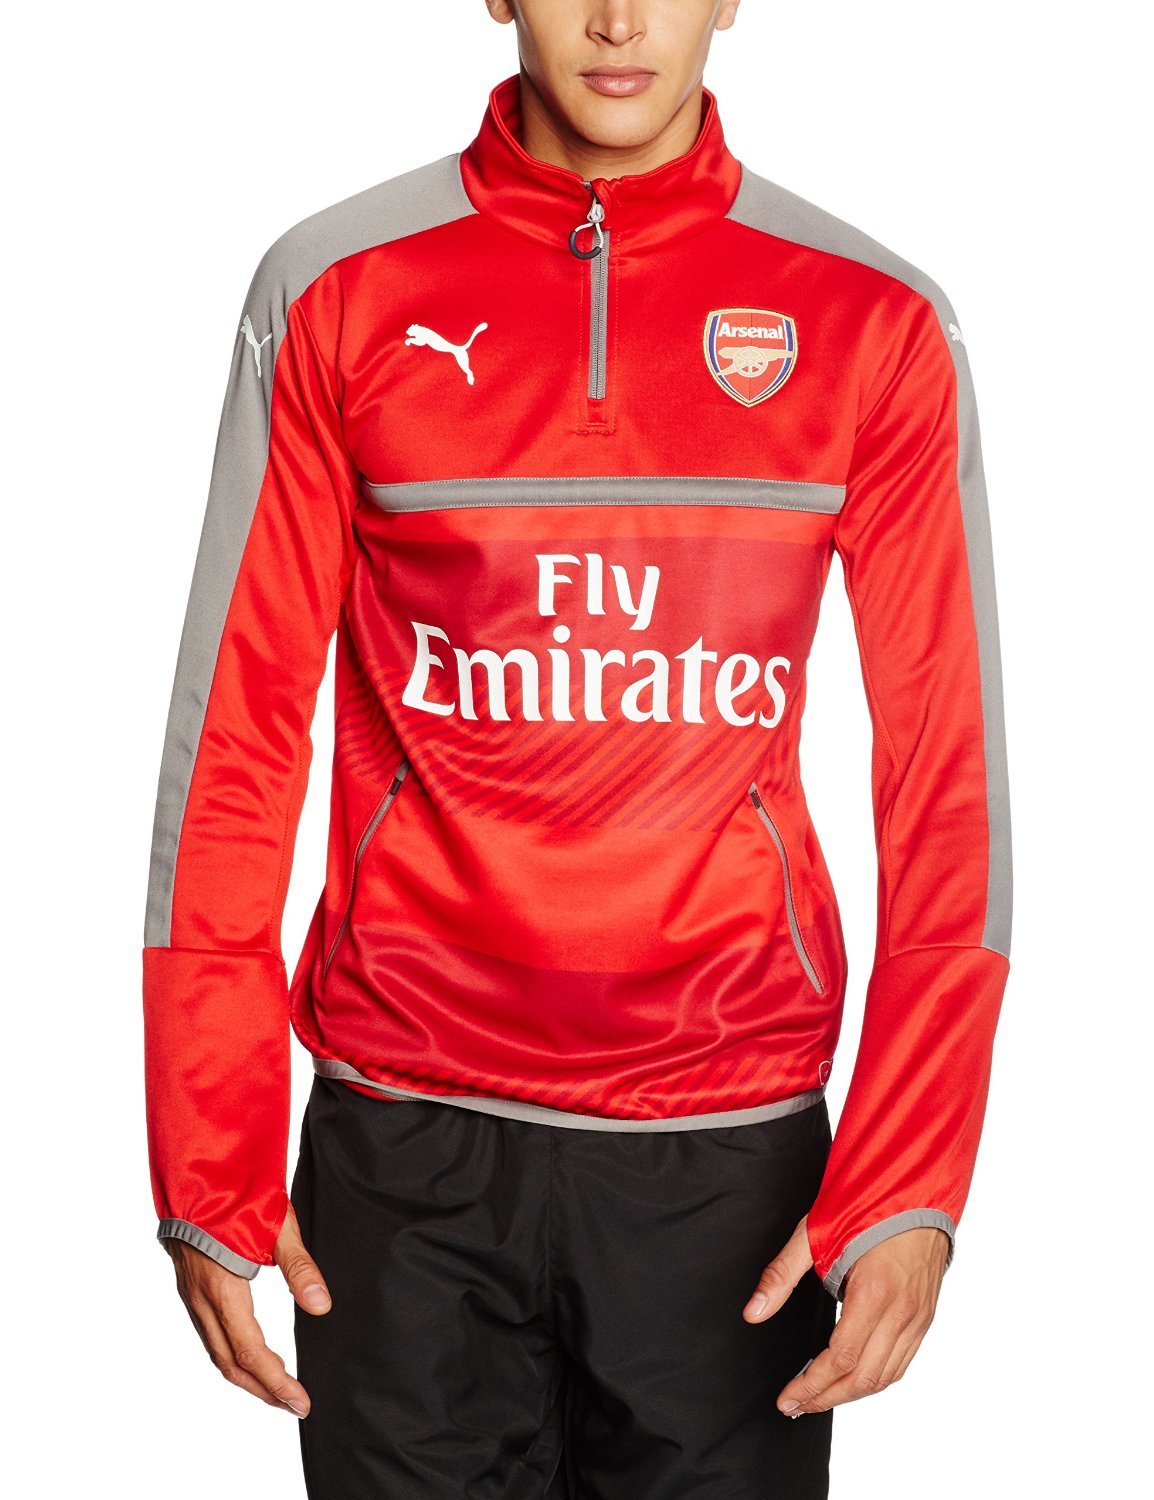 Puma Arsenal FC 2016/17 1/4 Zip Training Top - Adult - High Risk Red -